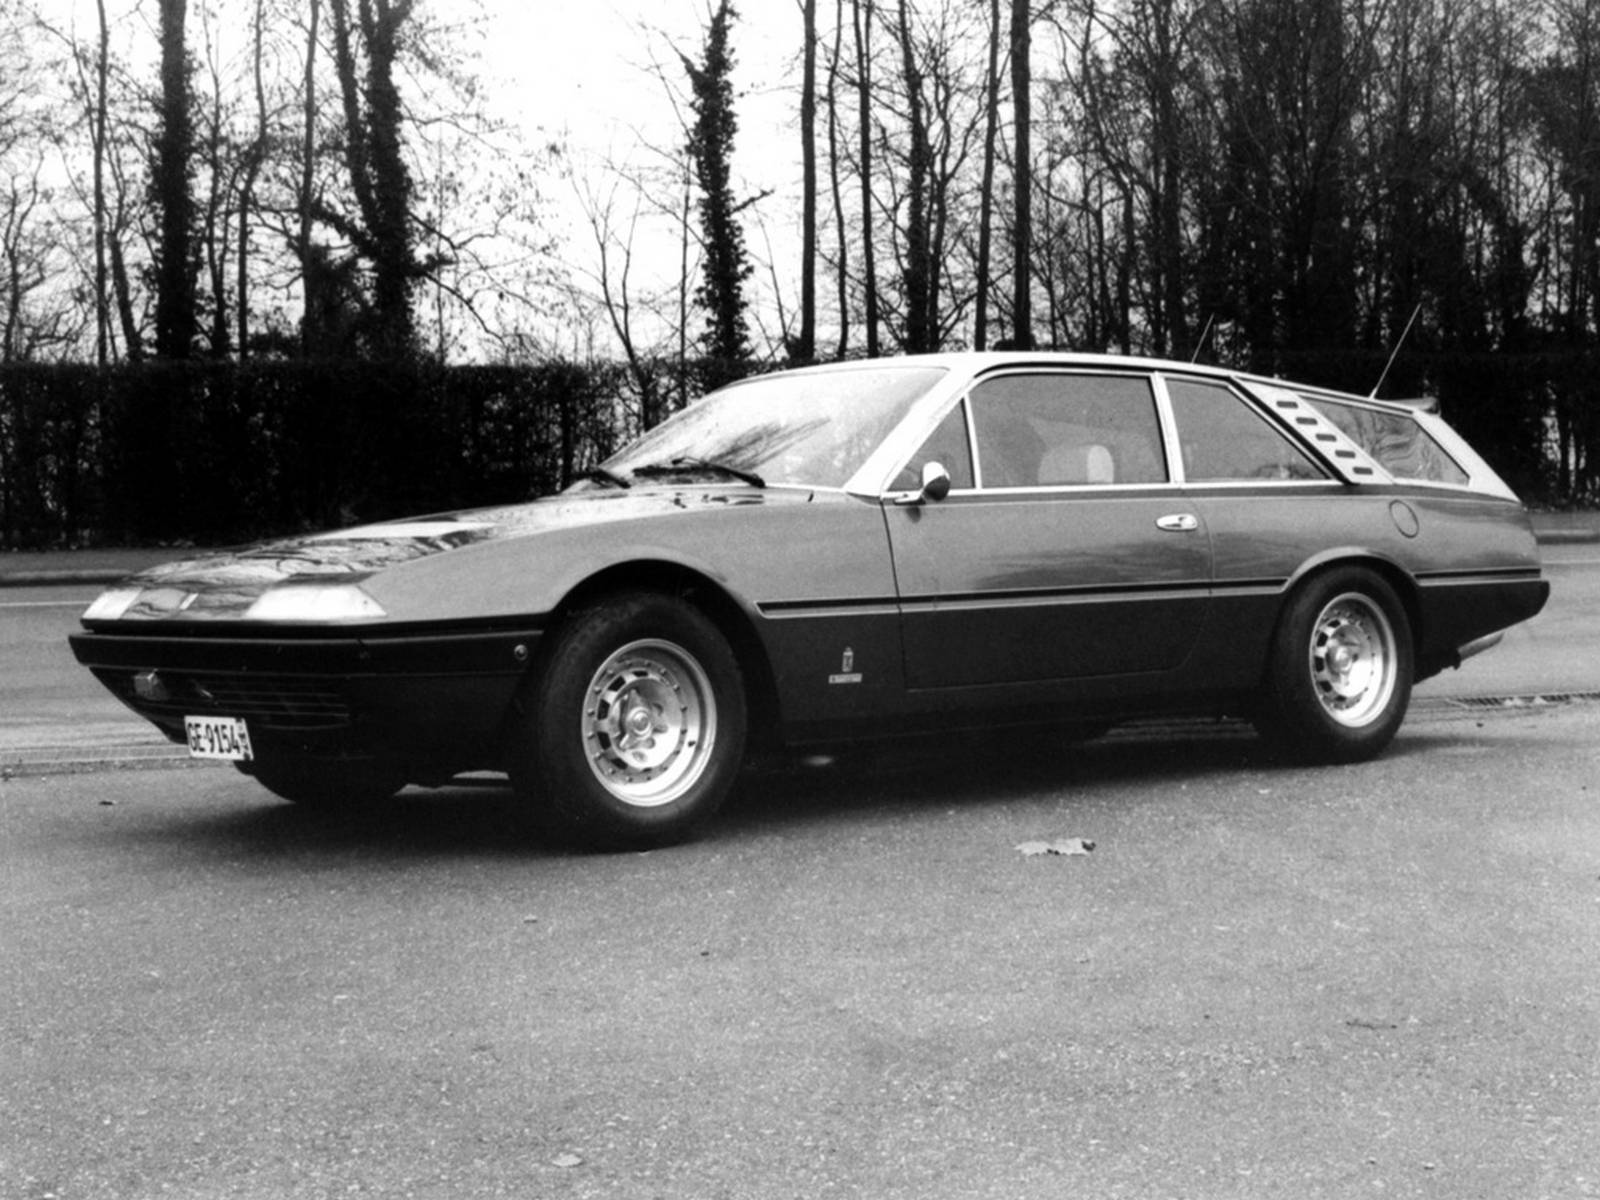 ferrari_365_gt4_2+2_shooting_brake_felber_1